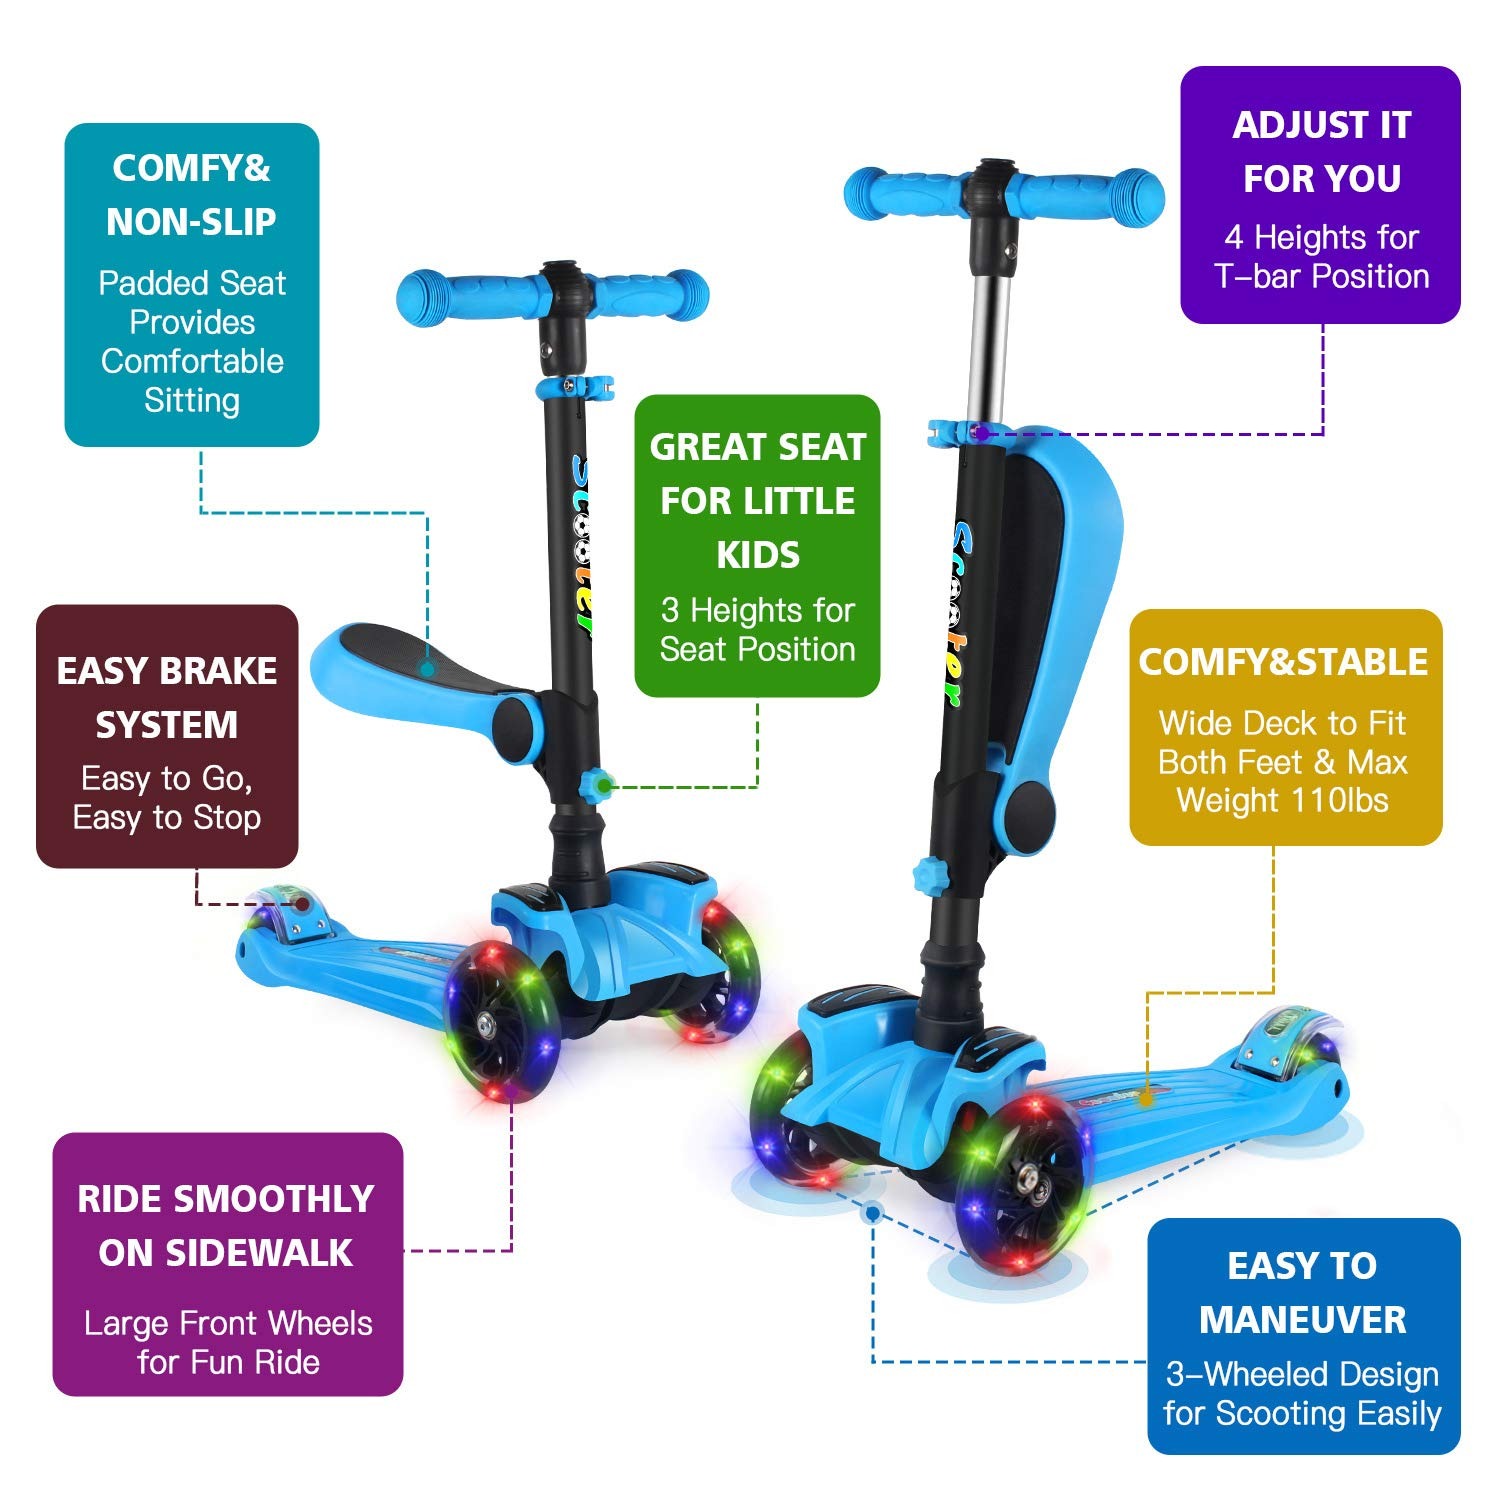 3 Wheel Scooter for Toddlers Girls /& Boys Adjustable Height BELEEV 2 in 1 Kick Scooter for Kids with Folding Seat Lean to Steer with PU Light Up Wheels for Children from 2 to 14 Years Old